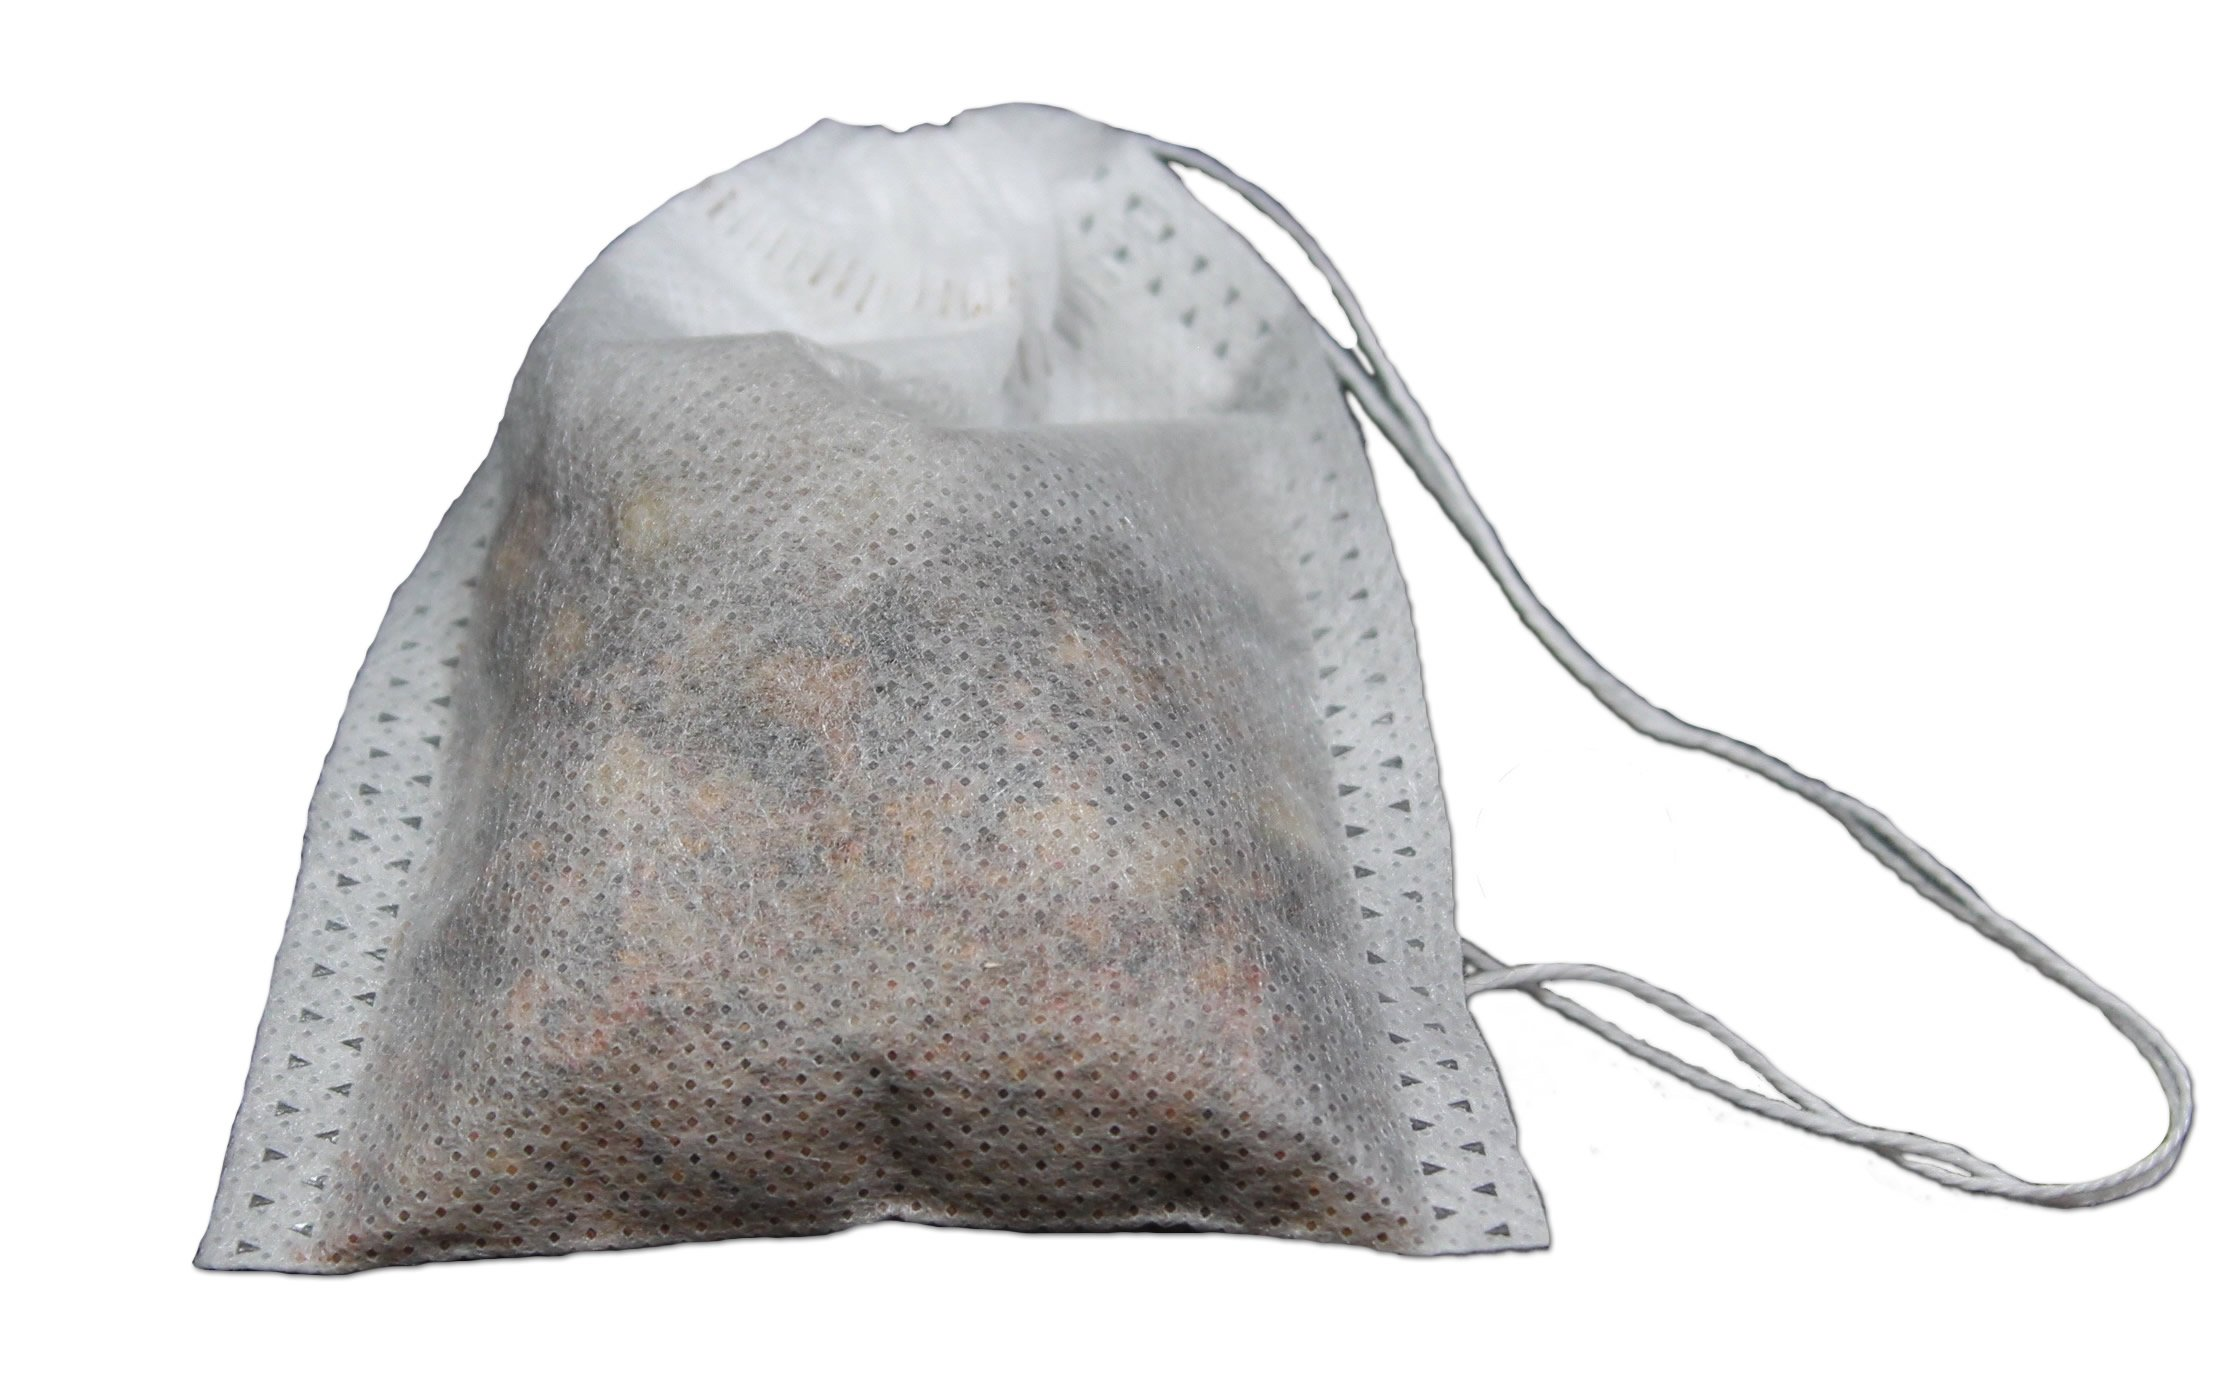 Special Tea 2500 Count Woven Style Draw String Bag, Large/3.14'' x 3.93''/80 x 100mm, White